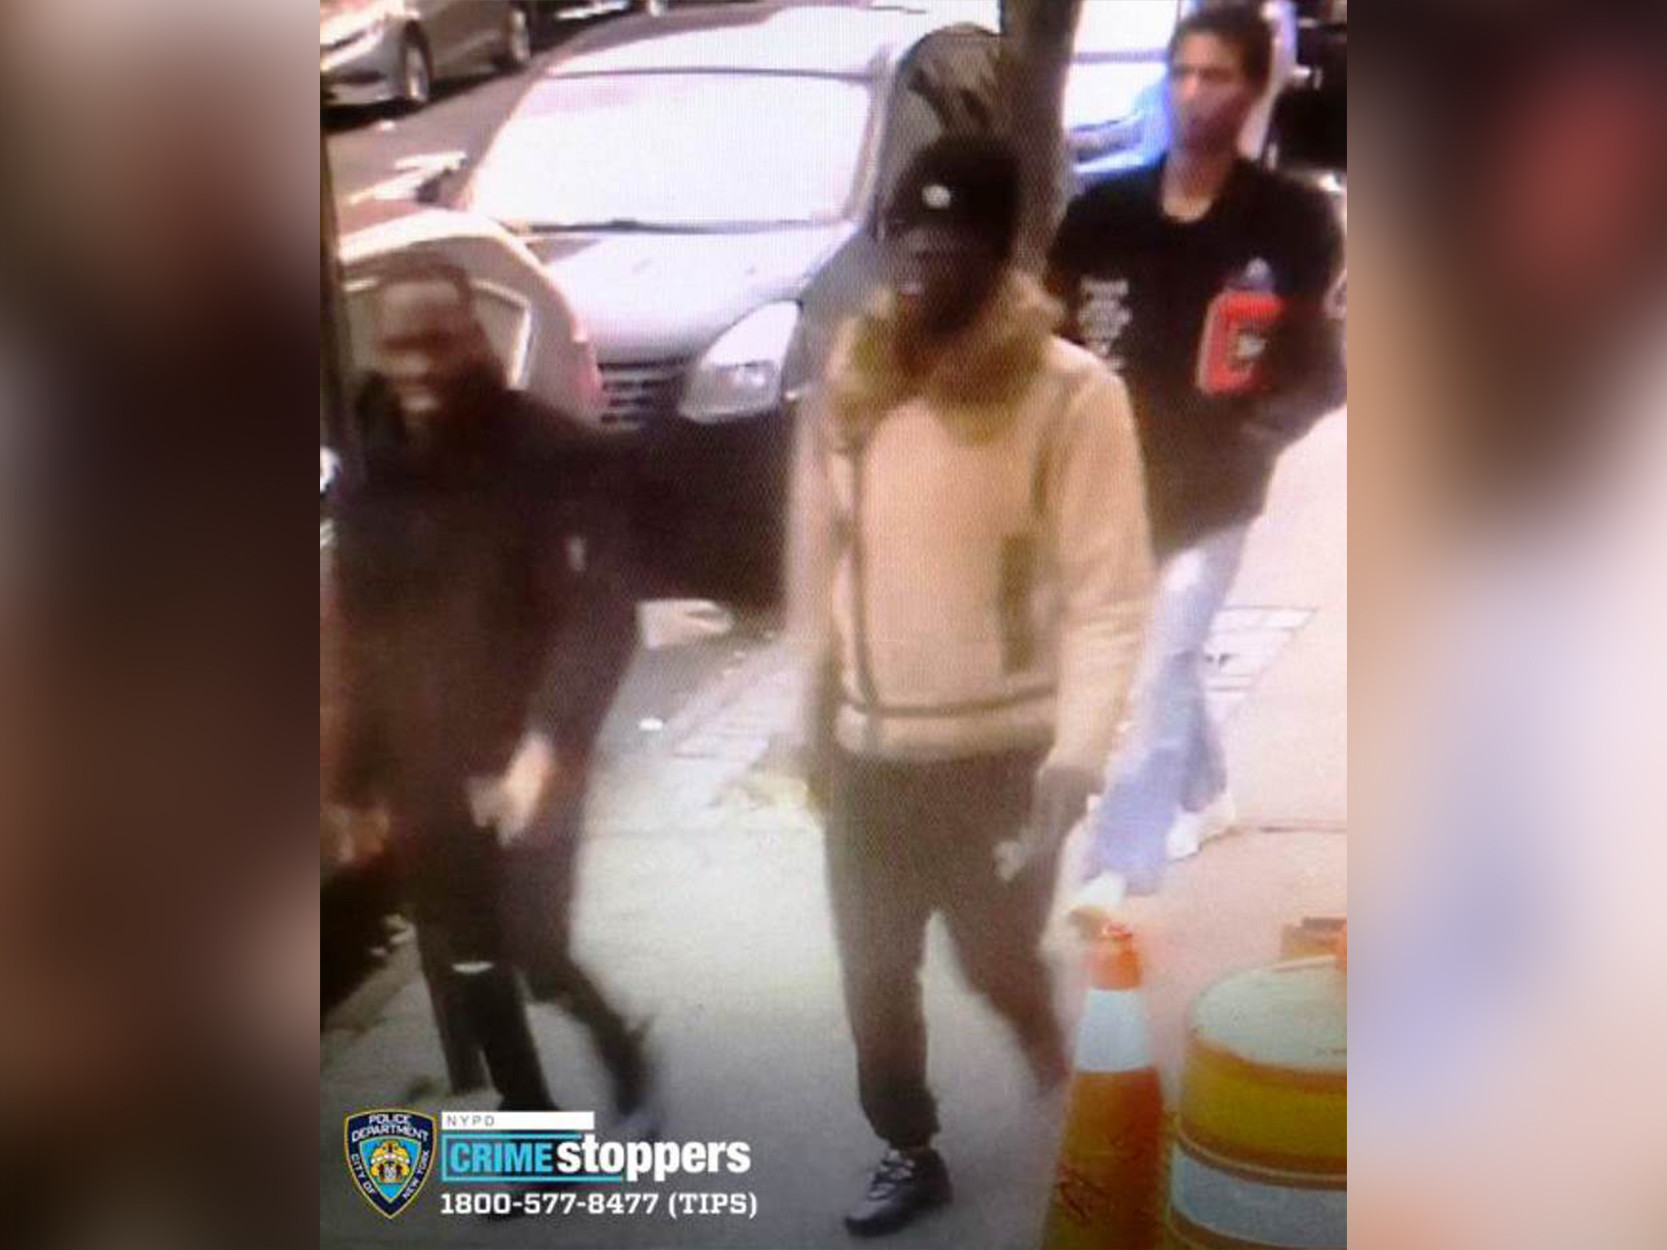 Cops release image of three persons of interest in wild Bronx shooting that left five people injured, including two boys